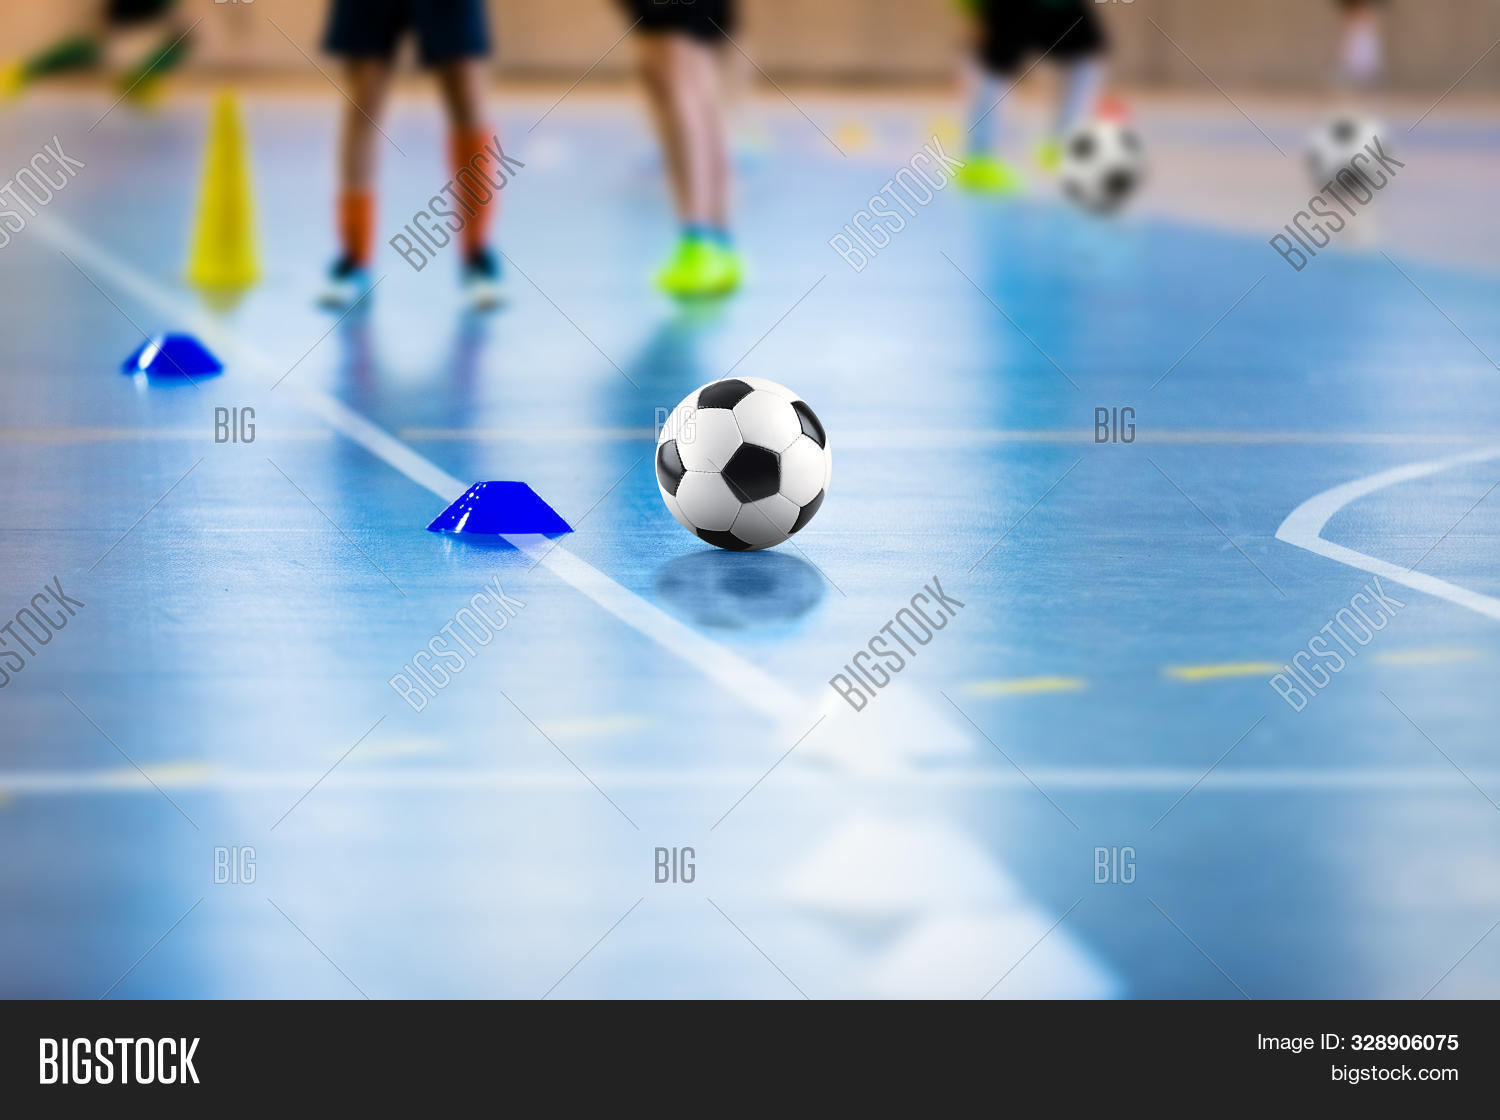 abstract,action,active,activity,arena,background,ball,boy,child,coach,dribble,drill,education,exercise,field,fitness,floor,foot,football,footballer,futsal,game,goal,gym,gymnasium,indoor,interior,junior,kick,kid,ladder,match,pitch,play,player,playground,recreation,school,skill,soccer,sock,sport,stadium,team,training,wood,young,youth